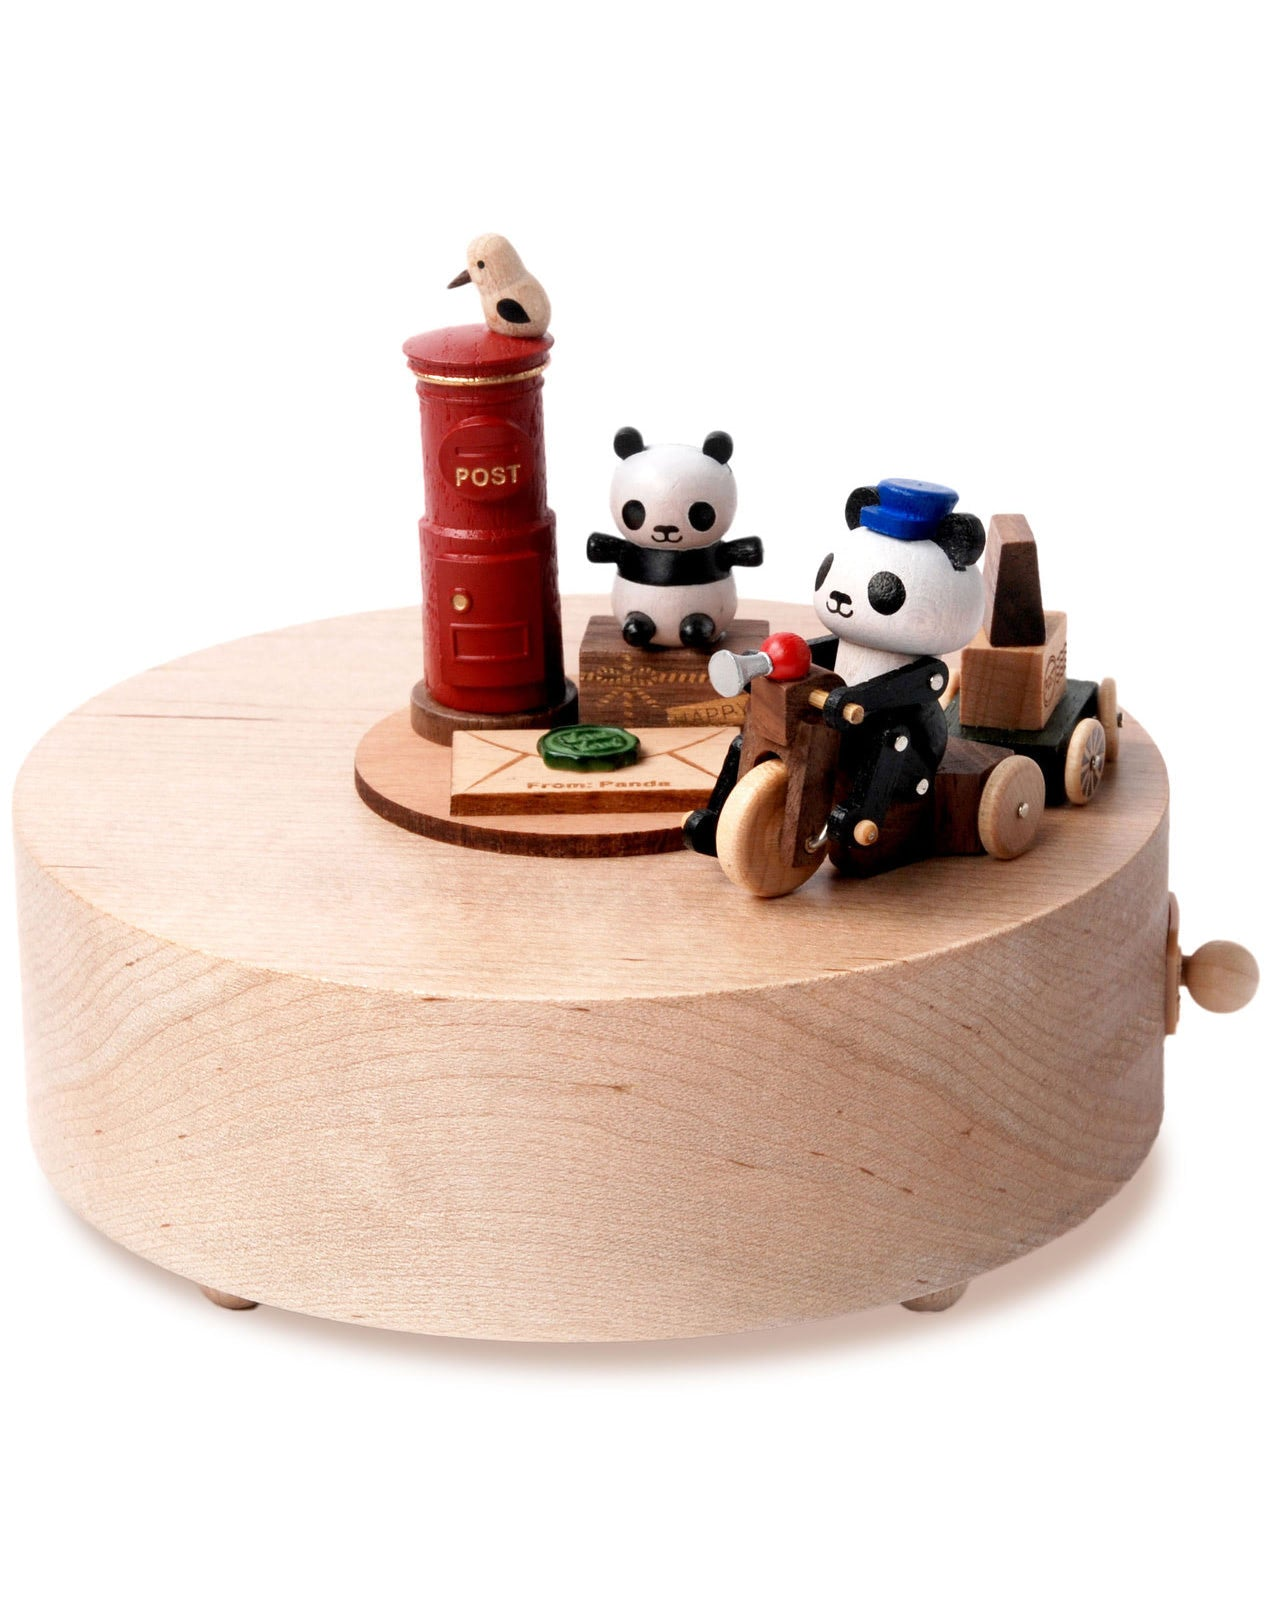 panda mailman delivering mail and red mailbox